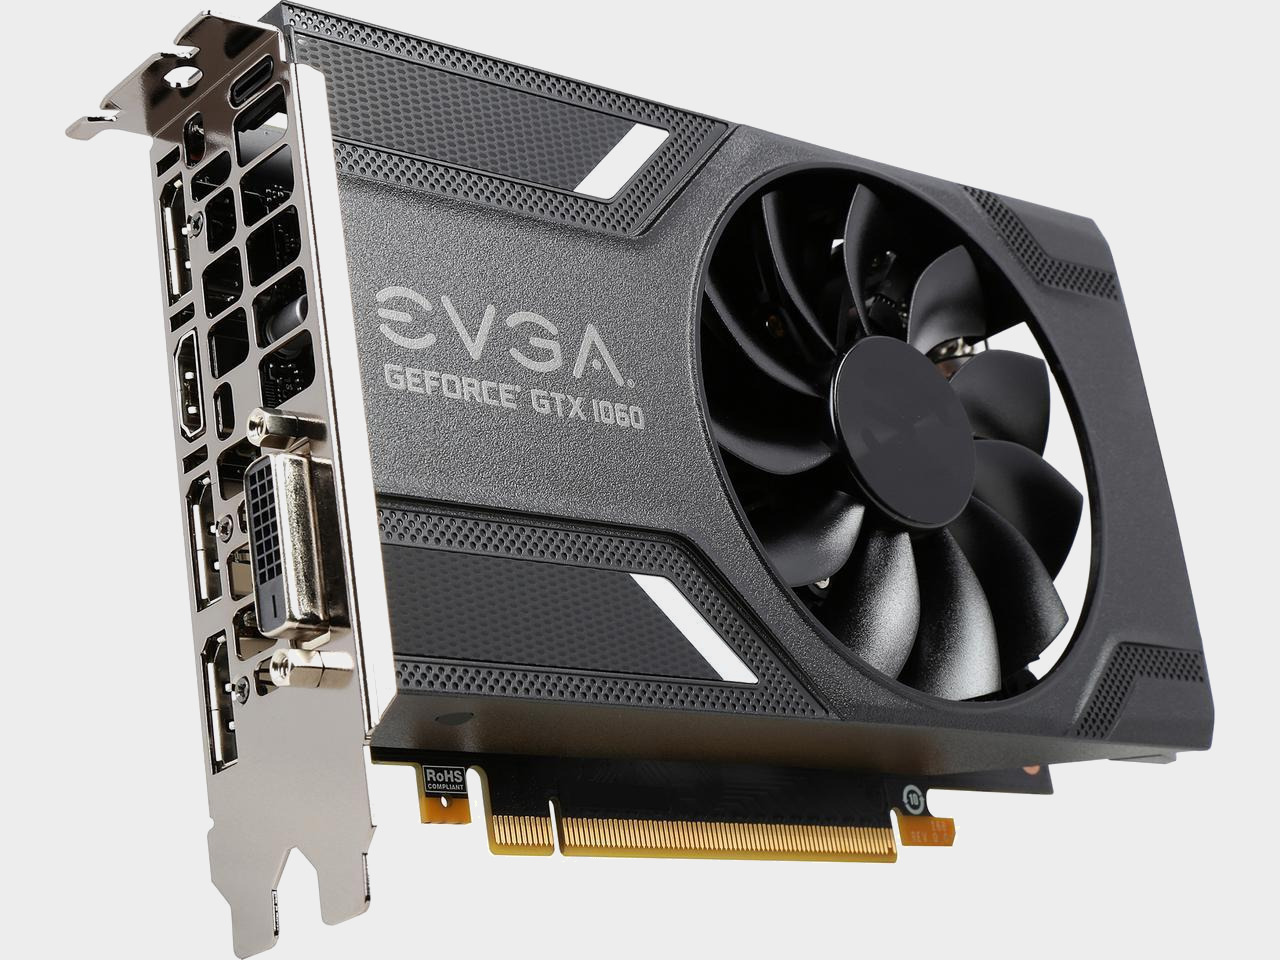 Get a 6GB GTX 1060 and a 600W power supply for $240